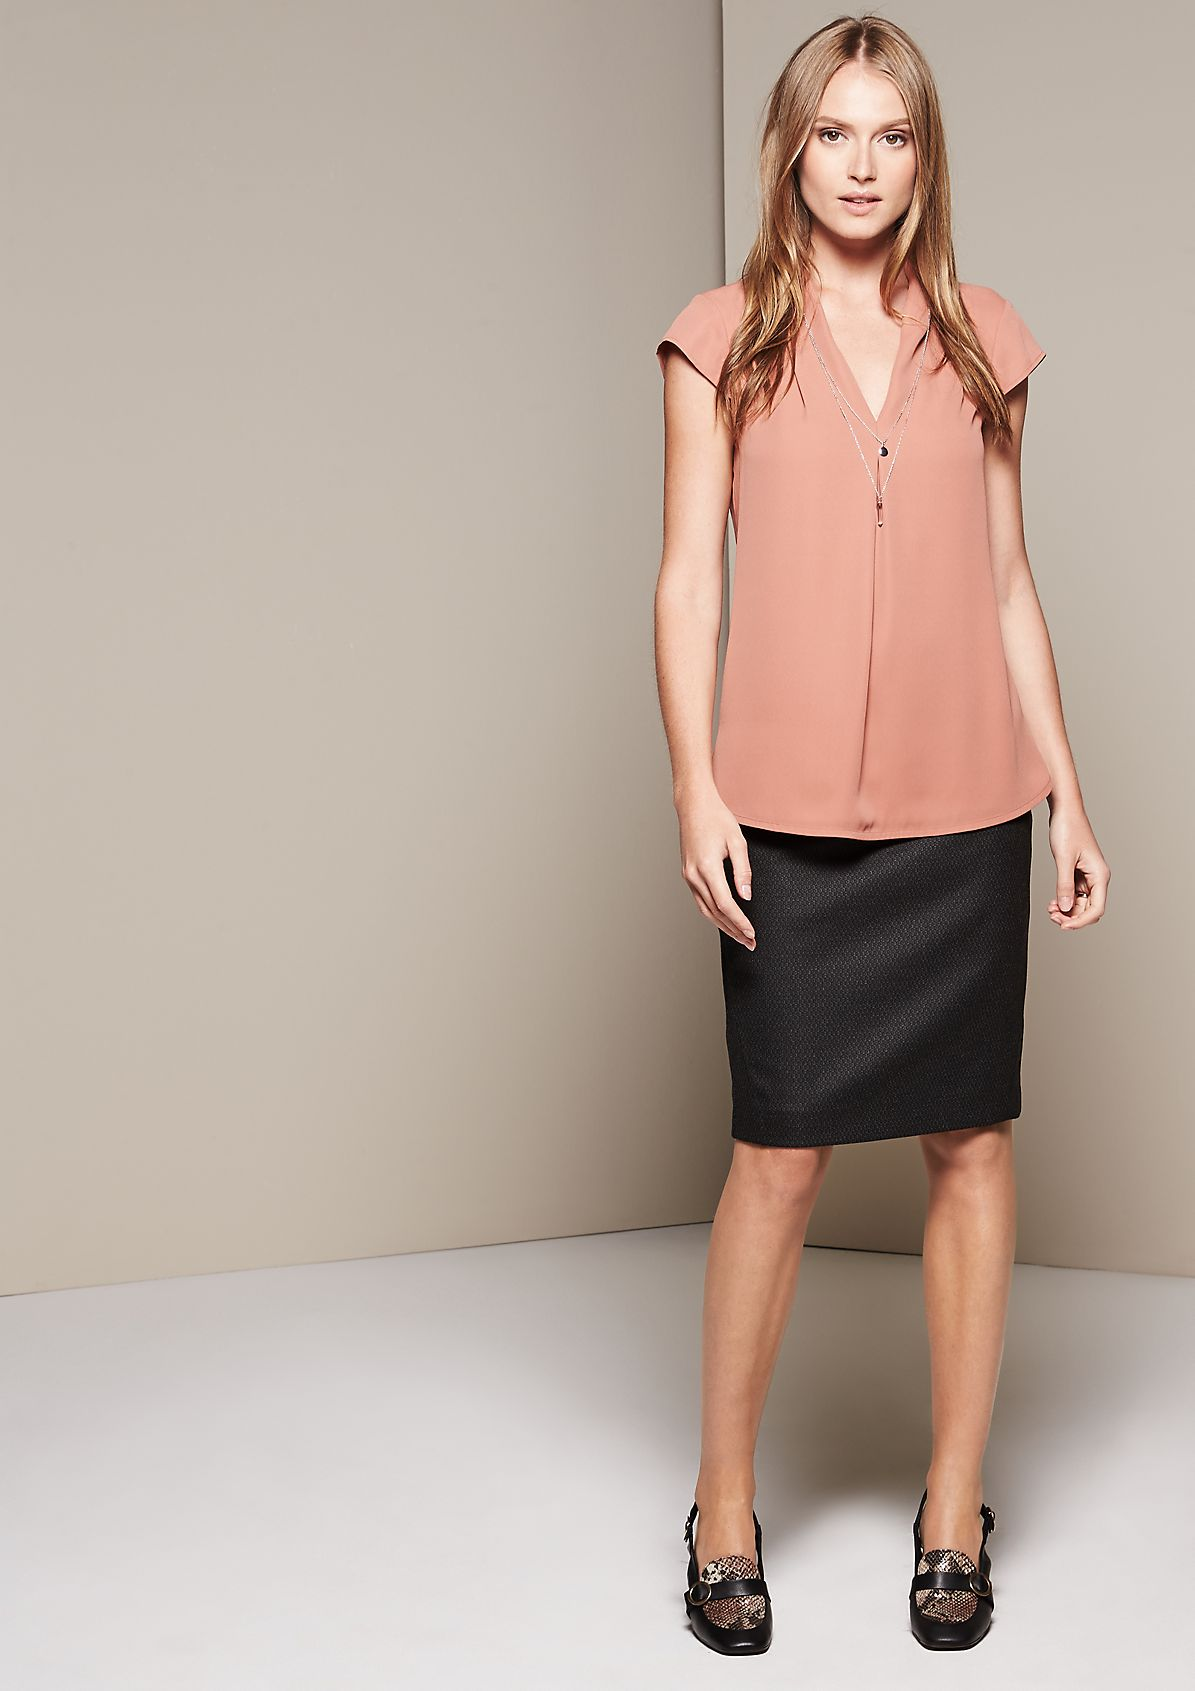 Lightweight short sleeve blouse with sophisticated details from comma